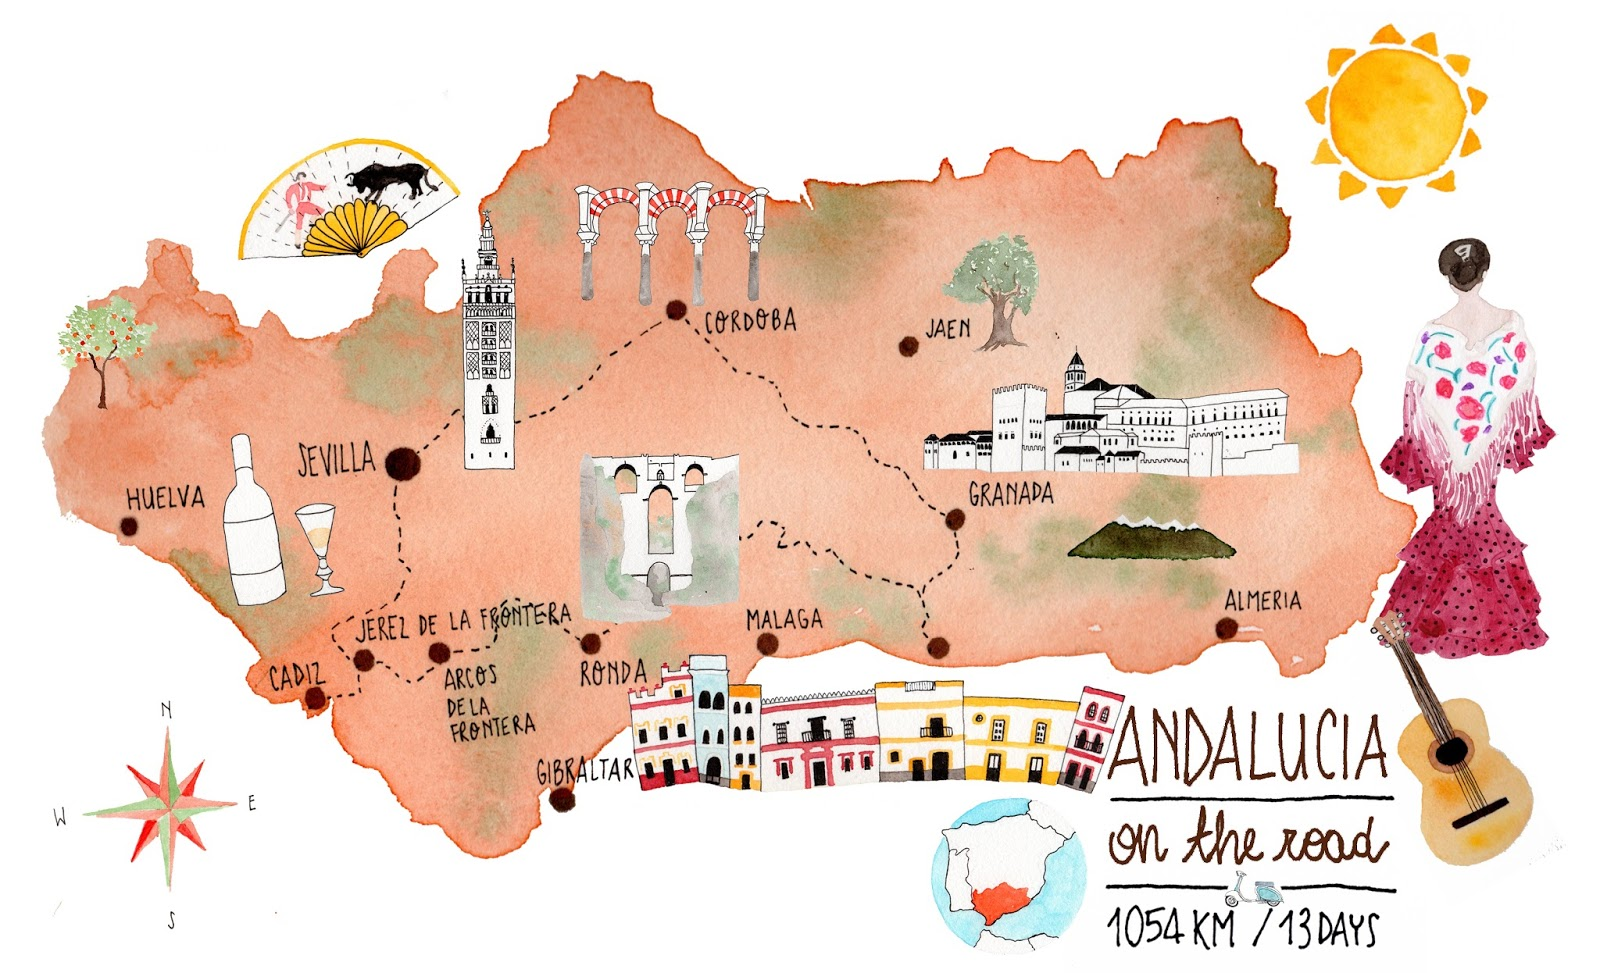 i diari della lambretta Andalucia on the road 13 days 1000 km 2